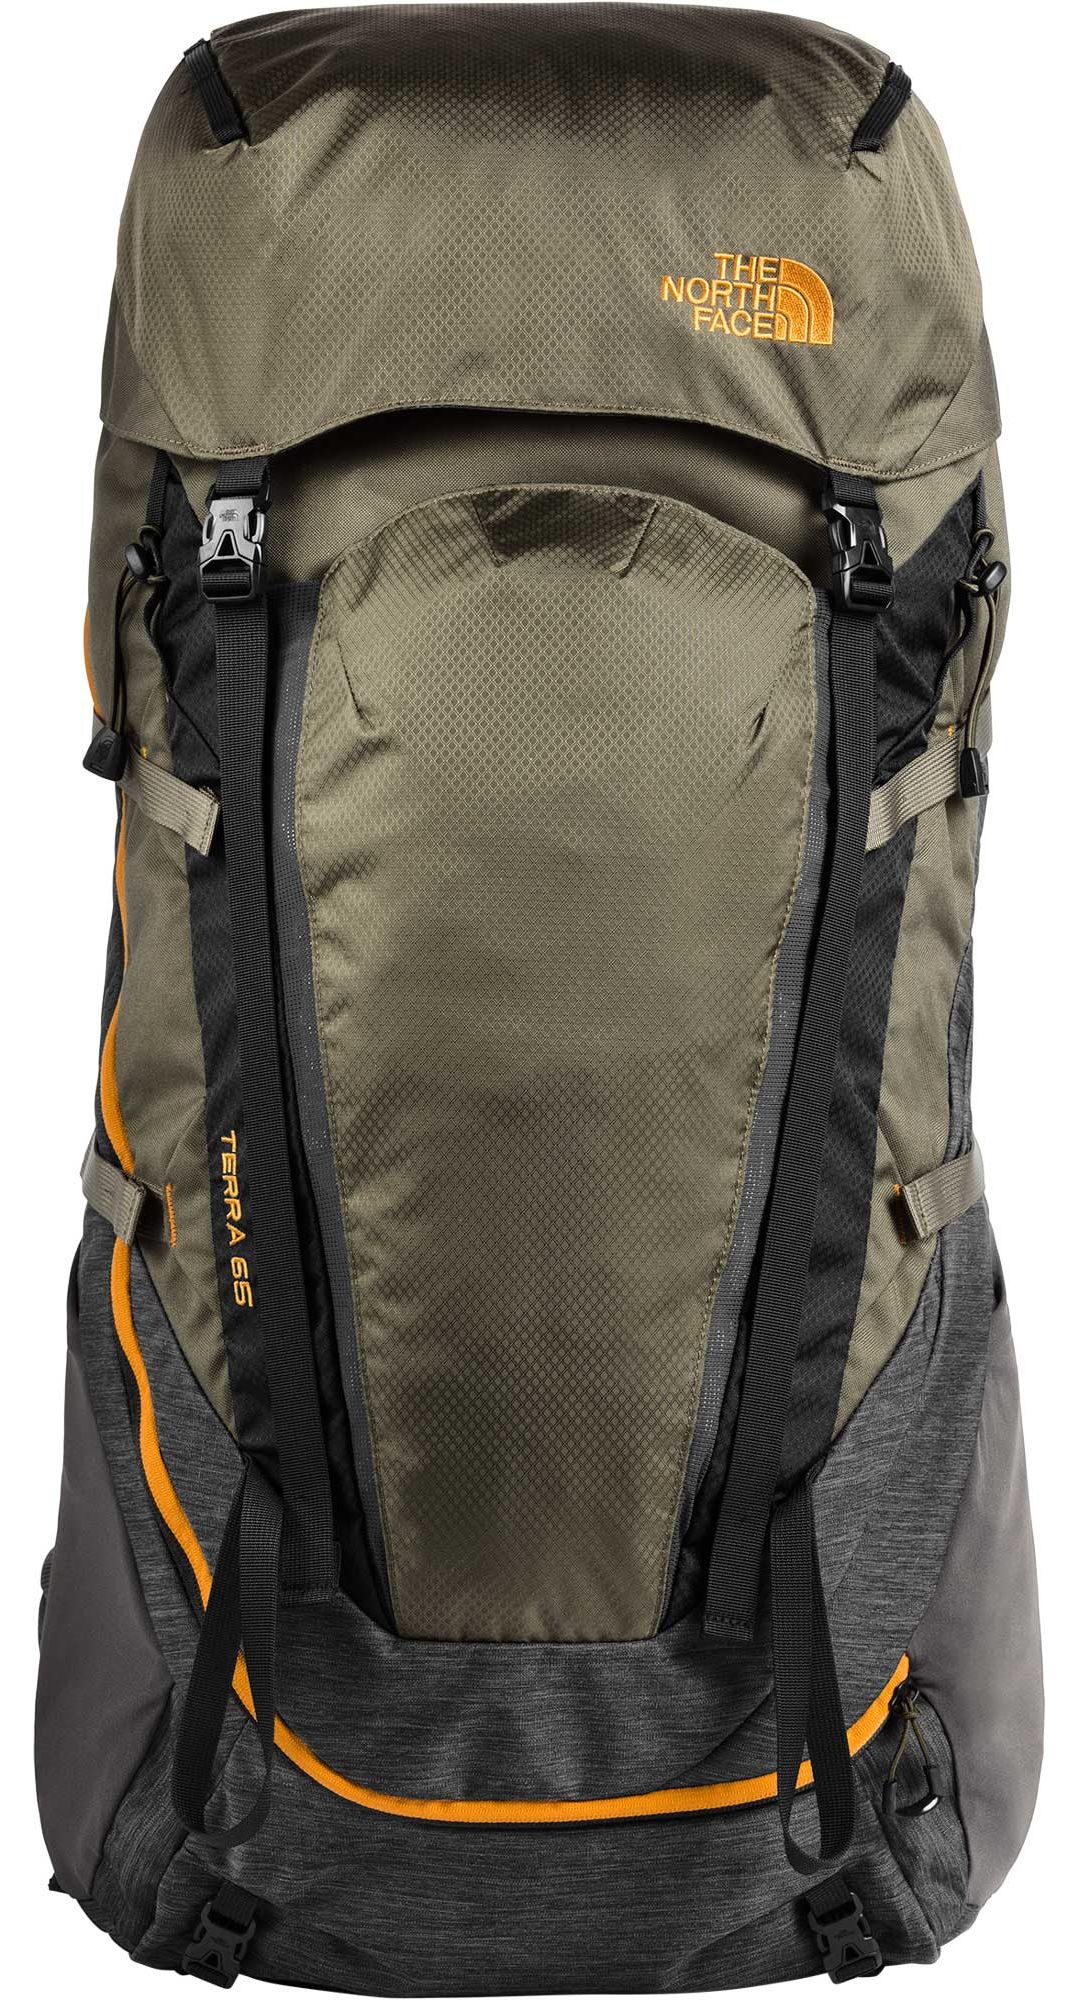 acfd51289 The North Face Terra 65L Internal Frame Pack